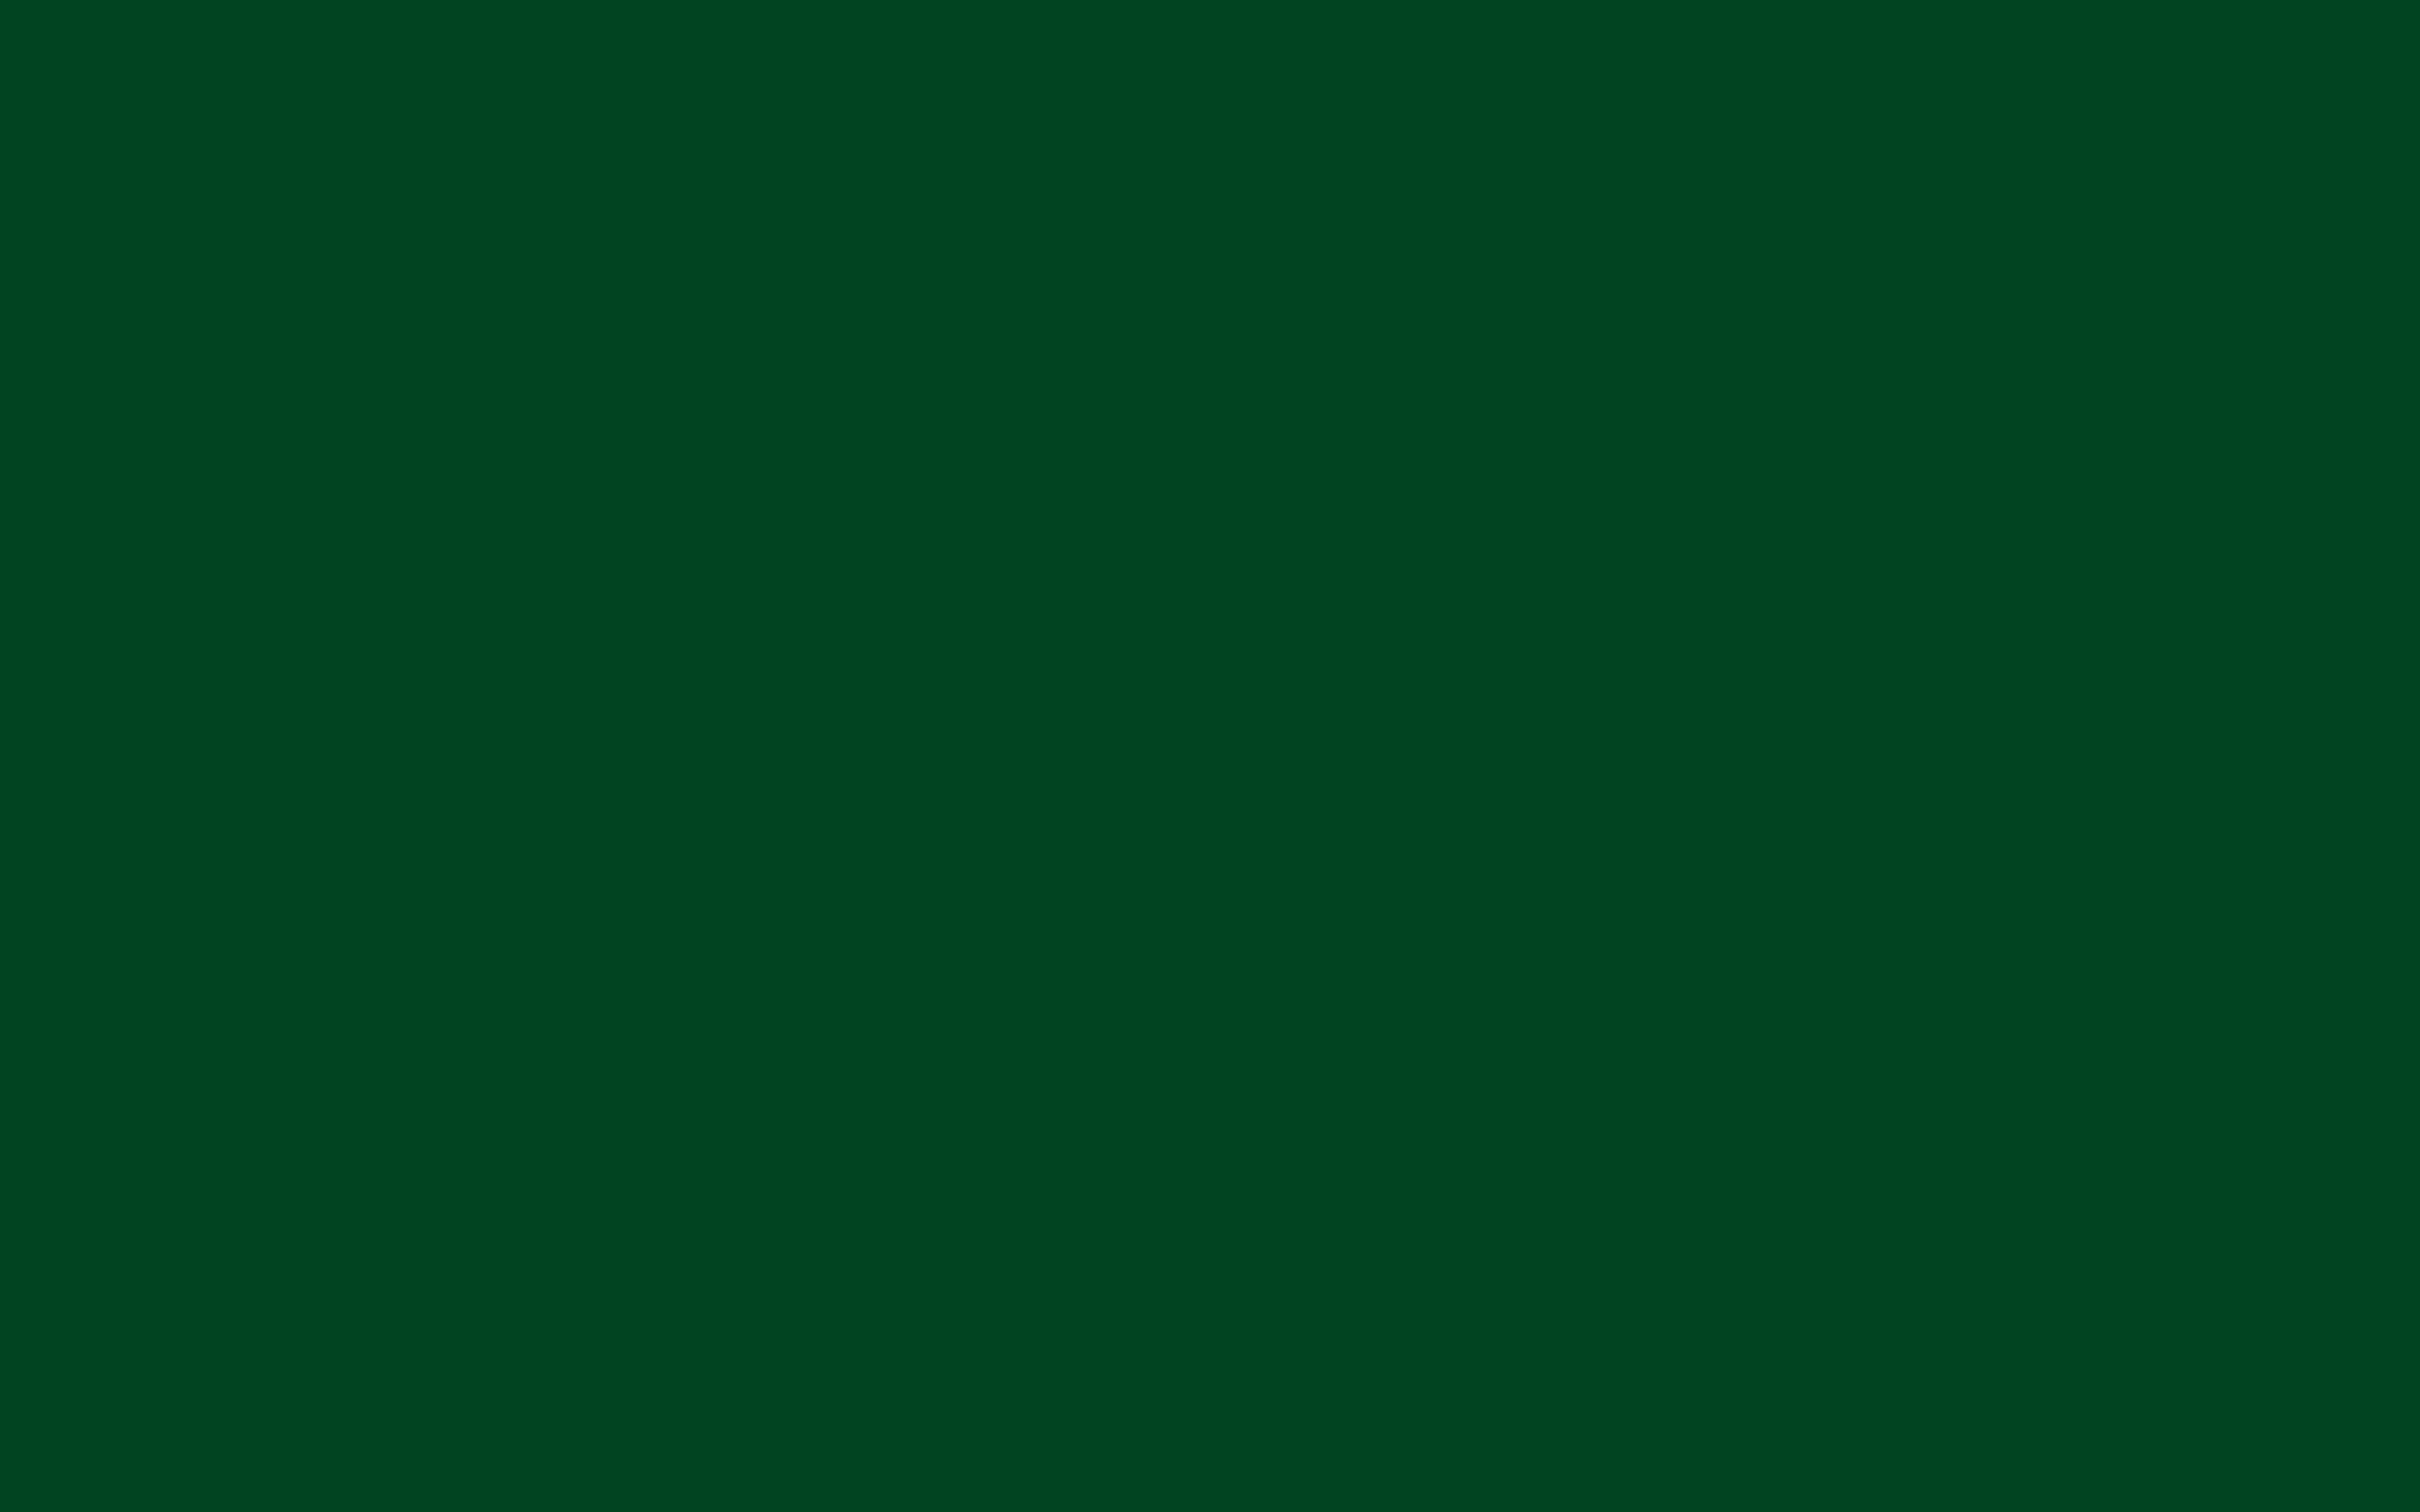 2560x1600 UP Forest Green Solid Color Background